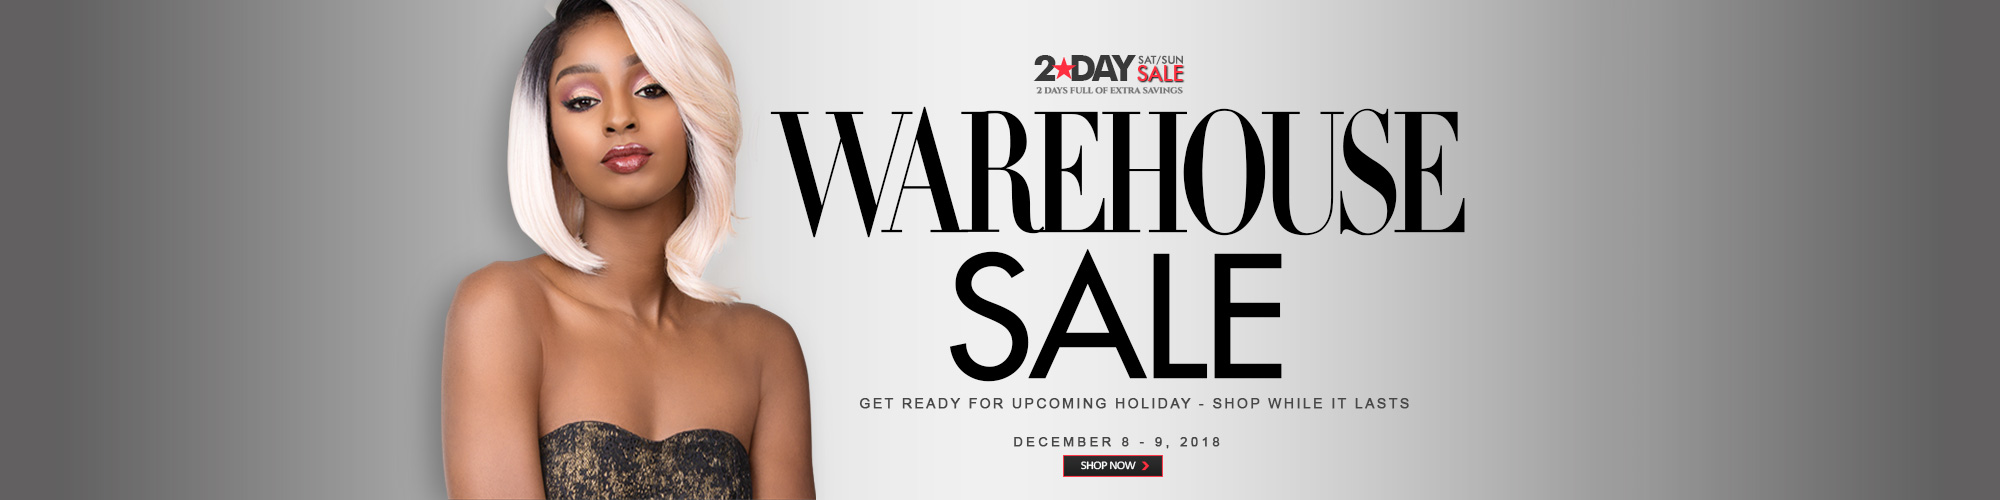 2-DAY WAREHOUSE SALE!